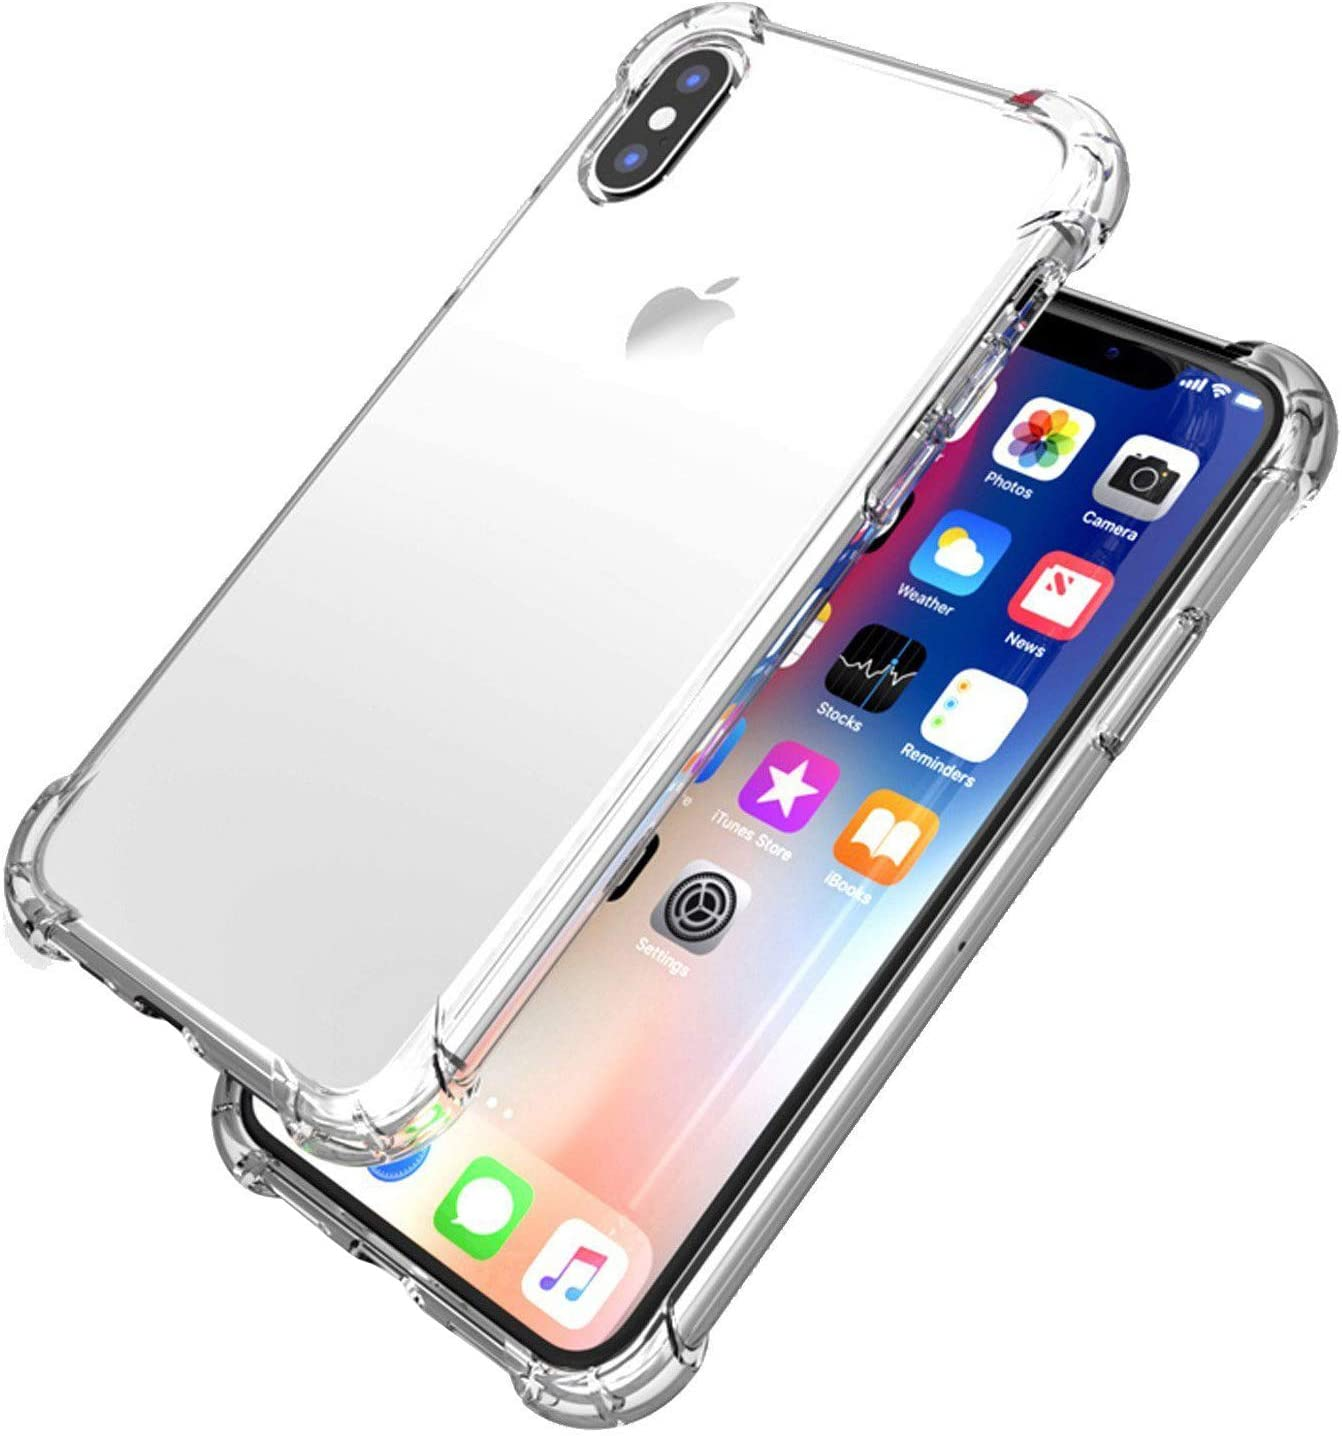 "Transparent Phone XR Case, Shockproof Bumper Clear Silicone Case Cover Compatible for iPhone XR 6.1"", Flexible Clear Protective Cover Phone Cases"